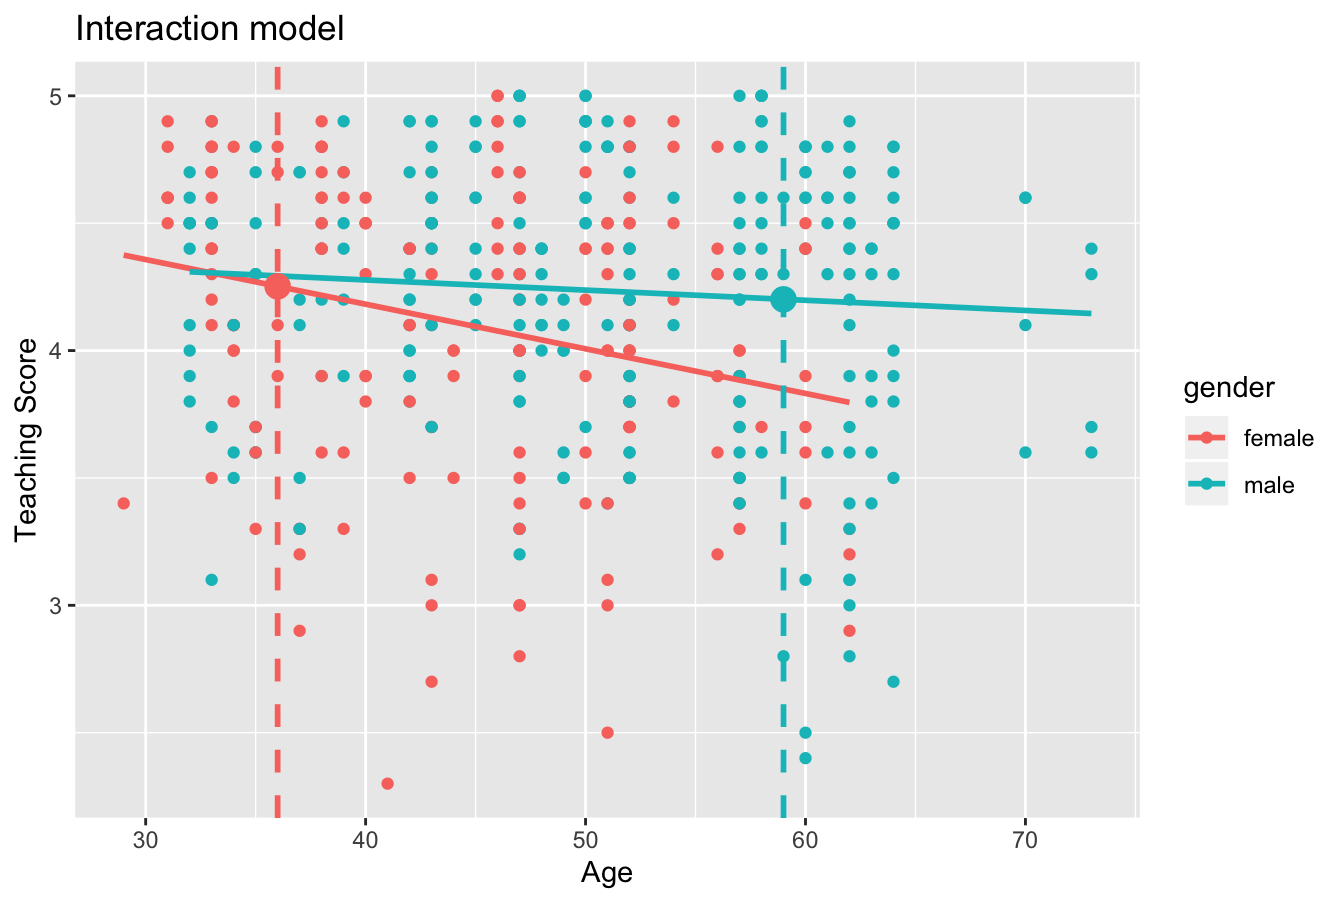 Fitted values for two new professors.